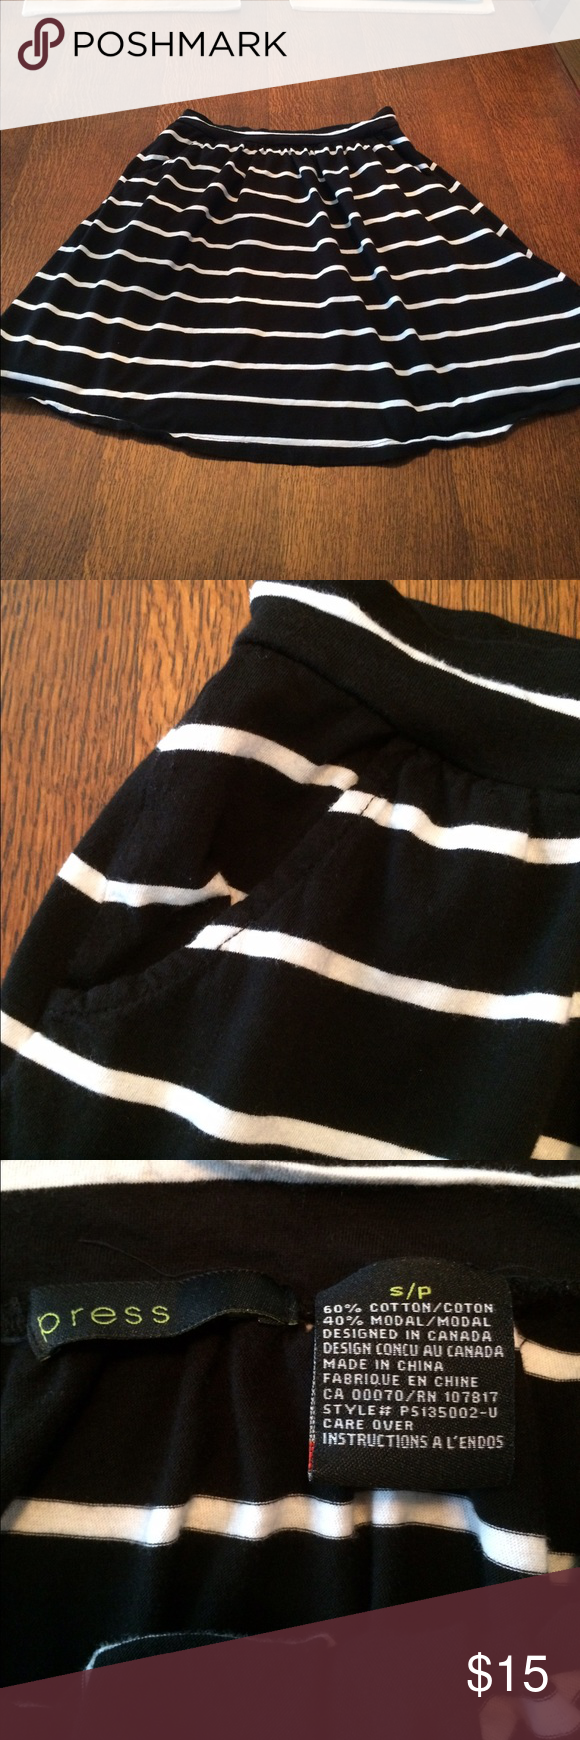 Black and white skirt Adorable black with white stripes skirt by press. Small. Press Skirts A-Line or Full